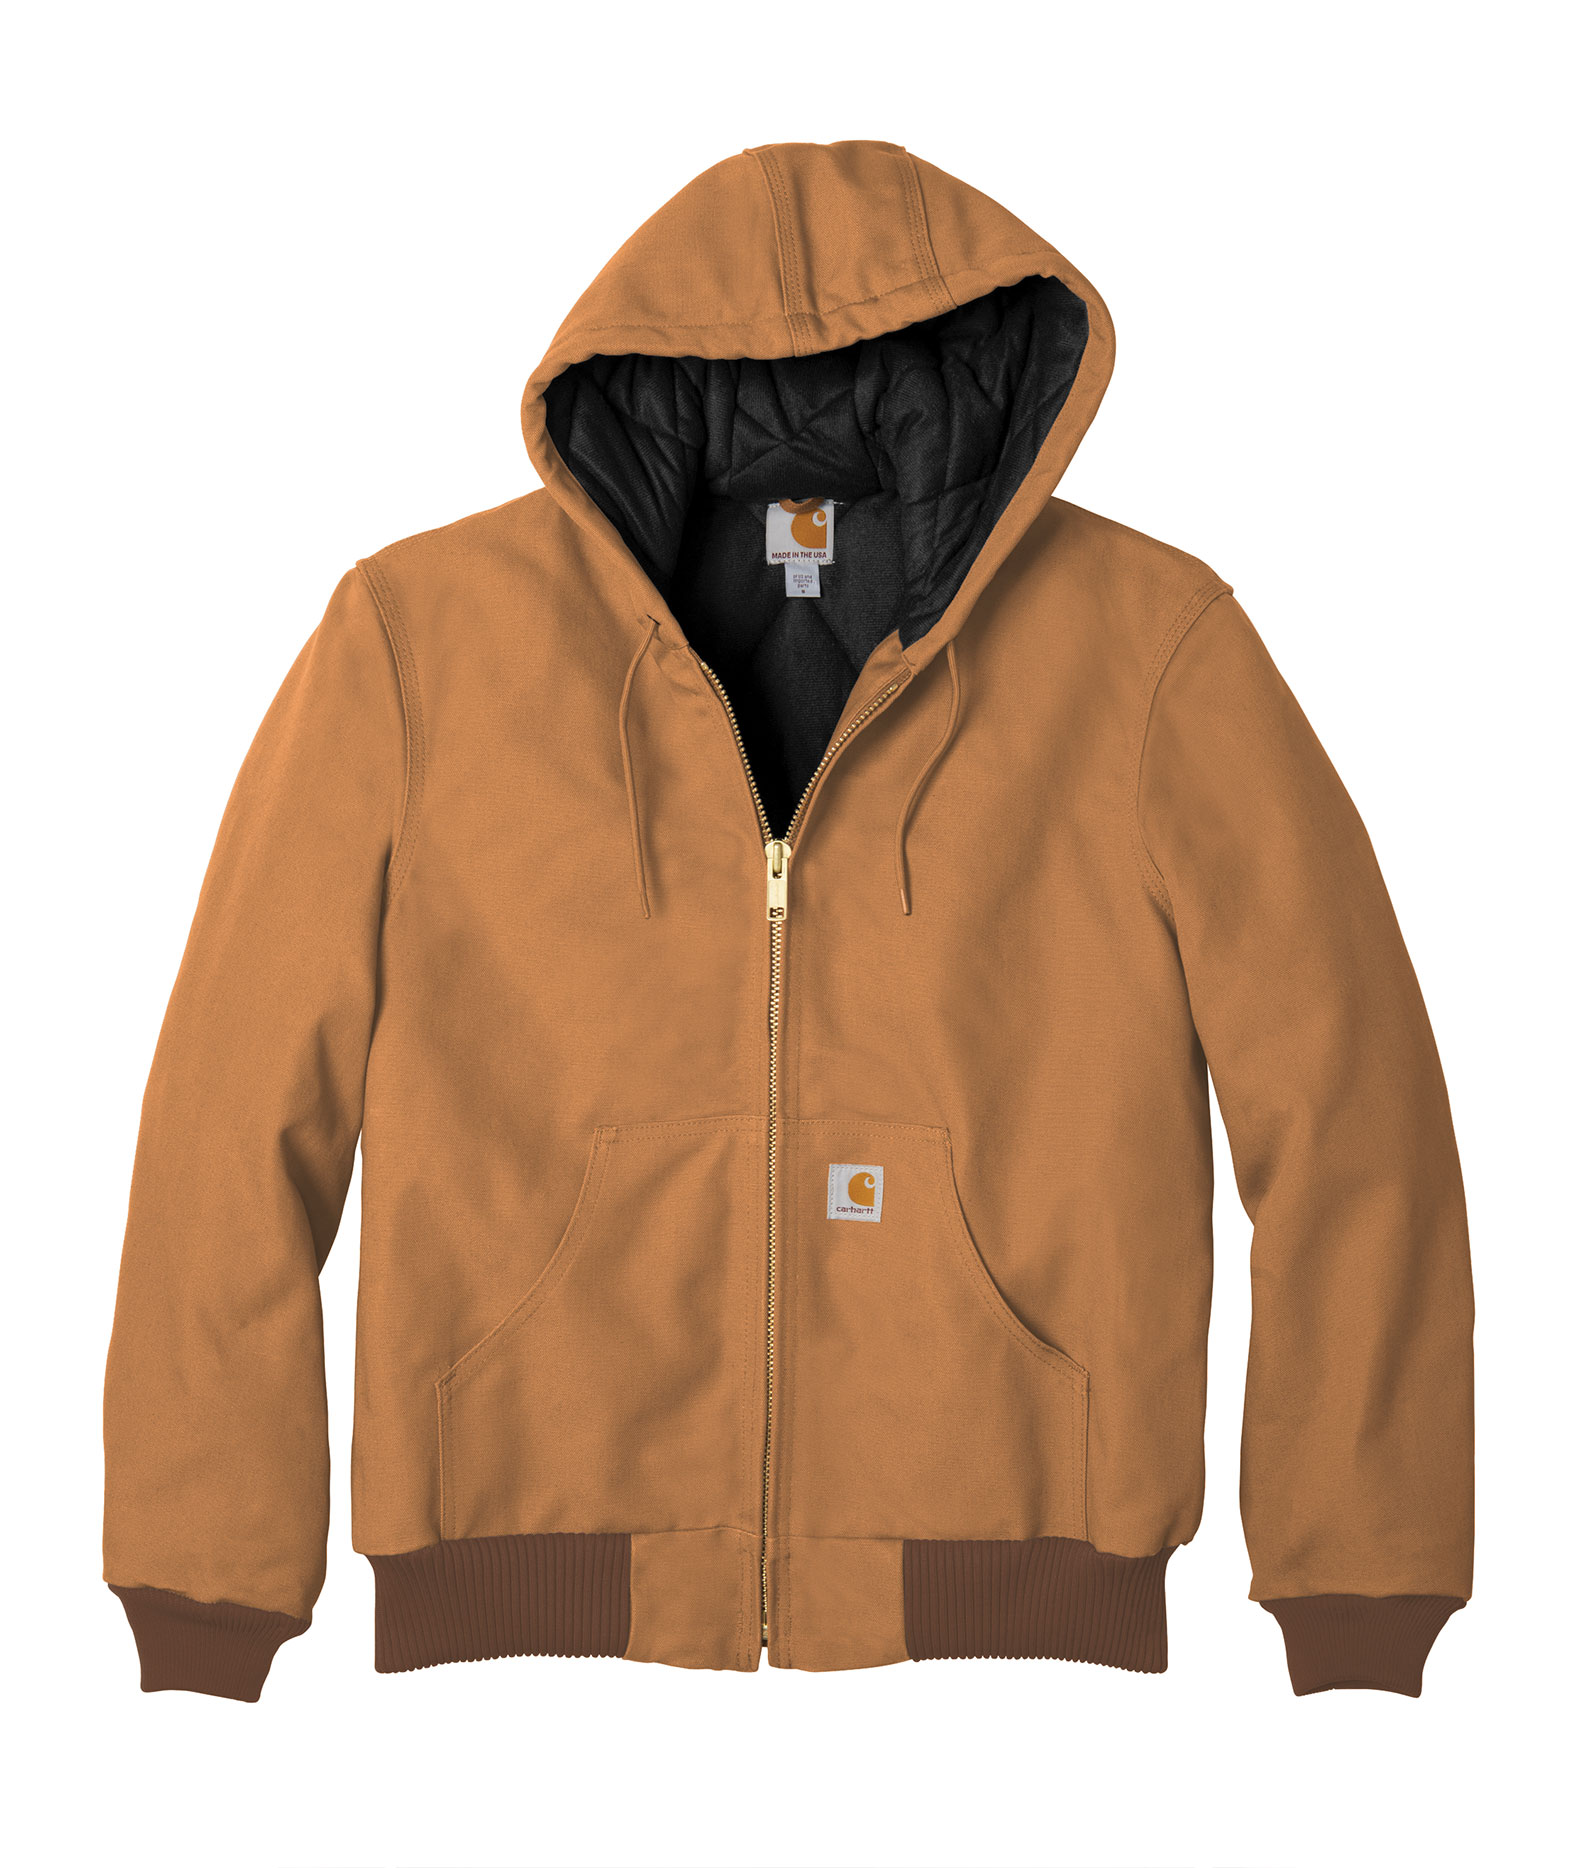 Carhartt Tall Duck Active Jacket with Quilted Flannel